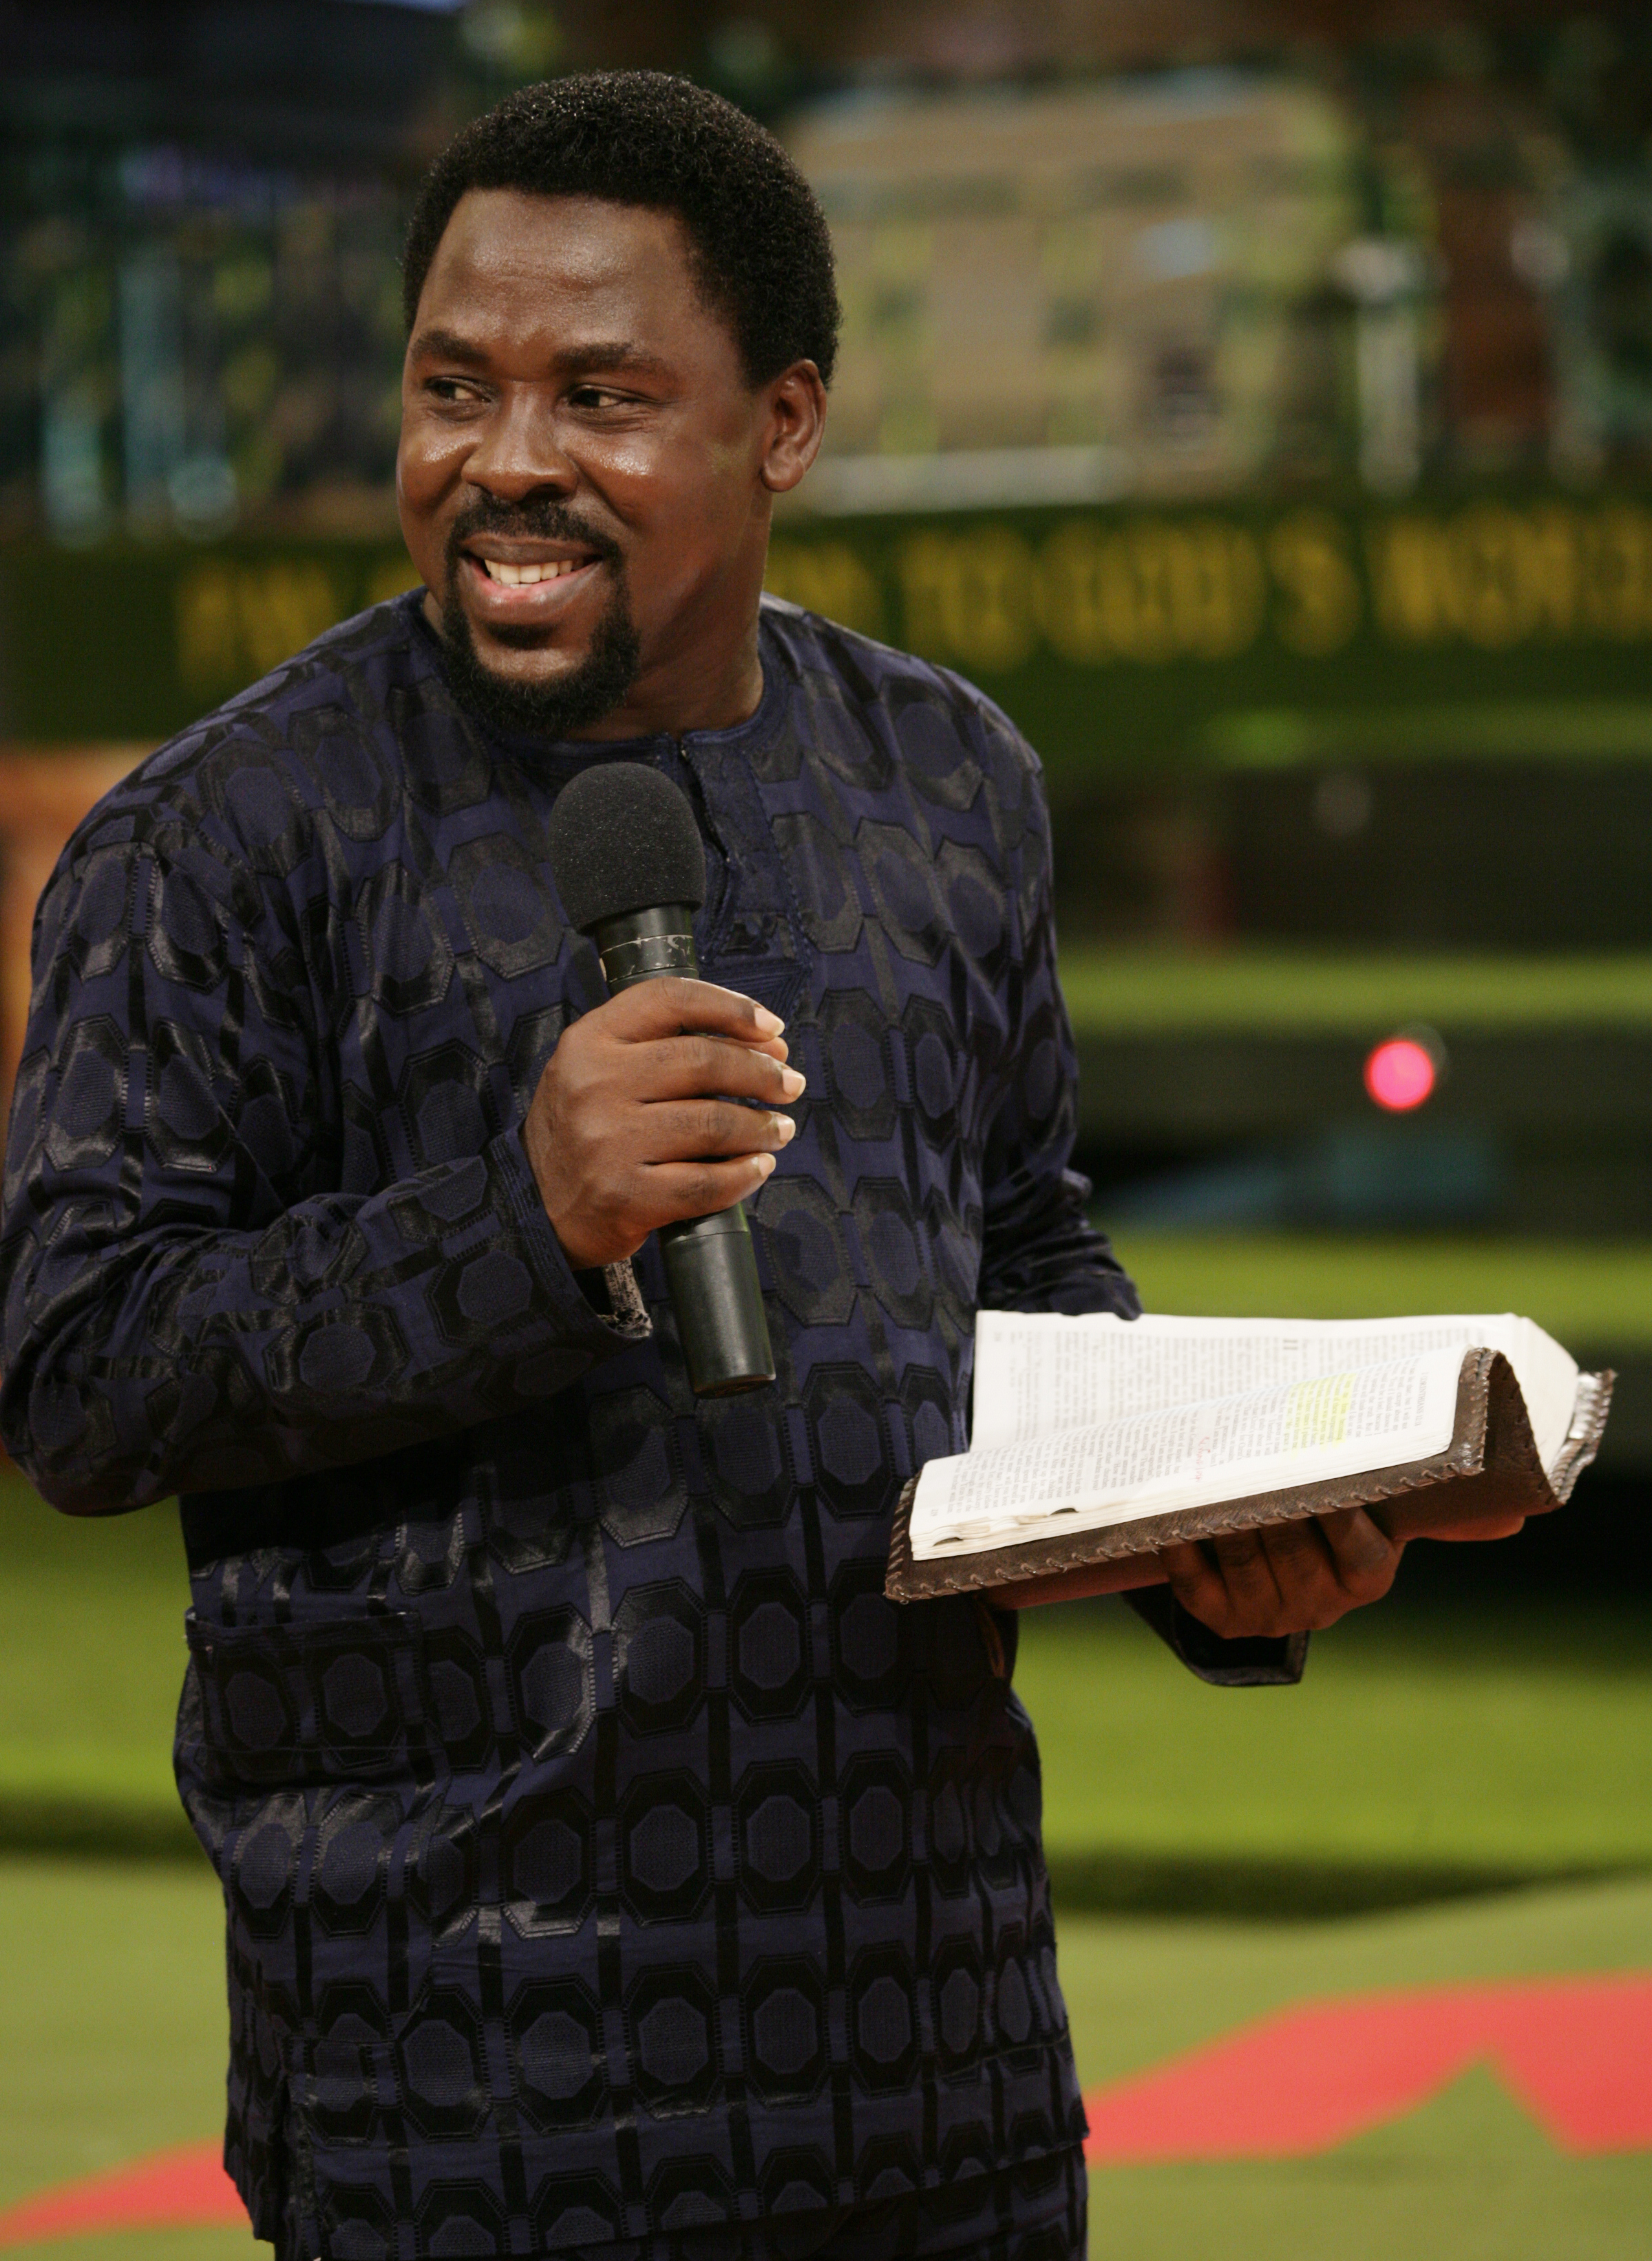 Who Is T B  Joshua's Mentor? - The Synagogue, Church Of All